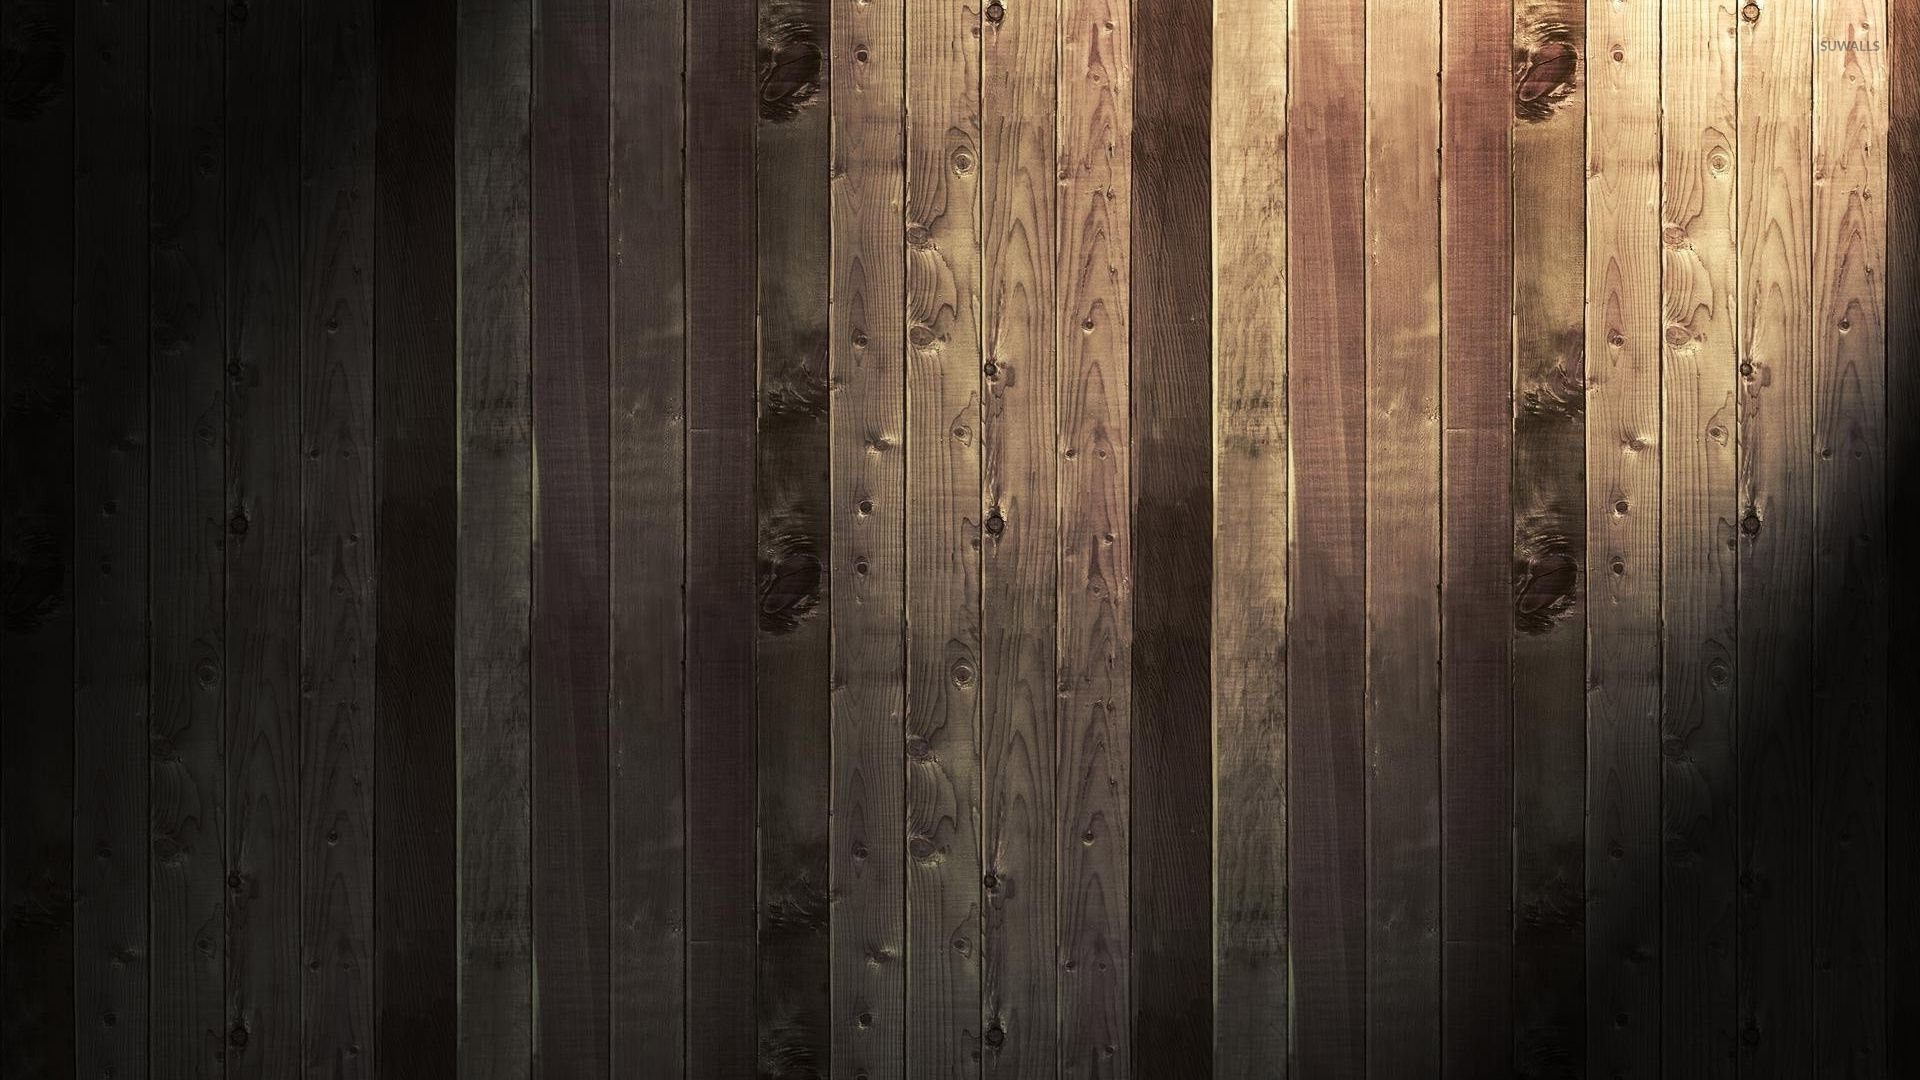 Light Shining On The Wood Panels Wallpaper